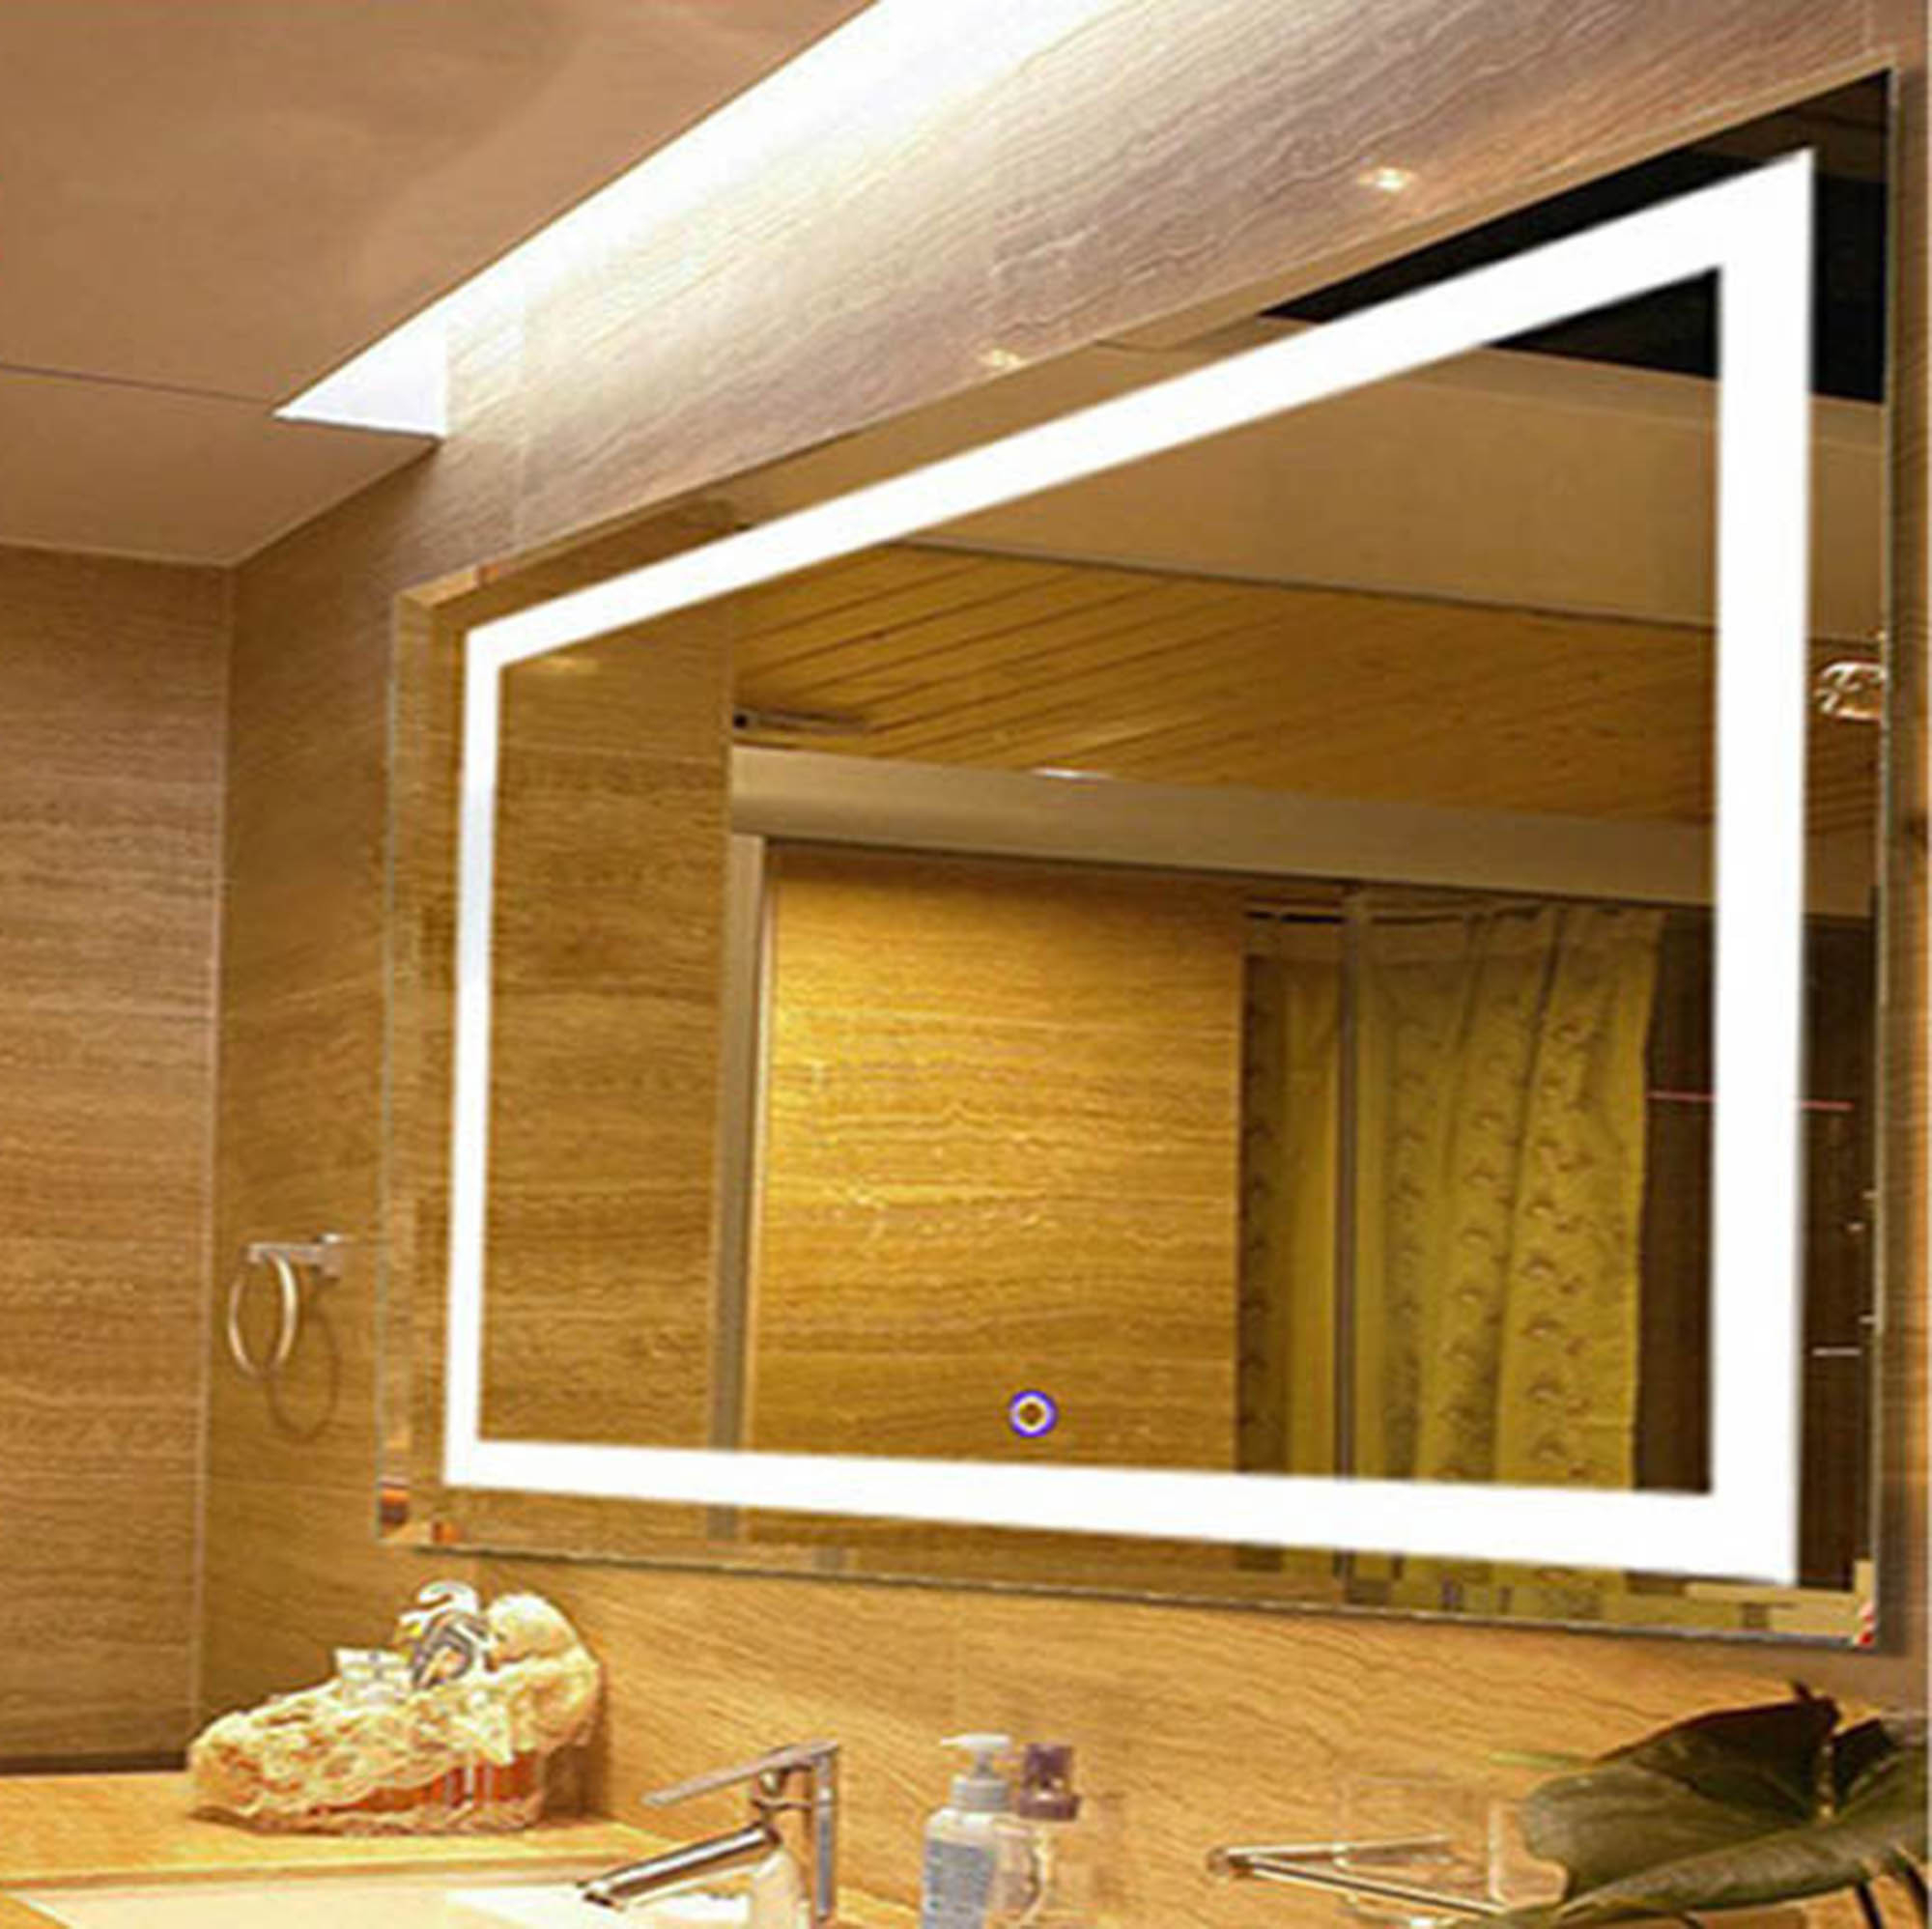 """Lighted Vanity Wall Mirrors With Regard To 2019 Bathroom Wall Mounted Led Lighted Vanity Mirror 31""""X23"""" (Gallery 19 of 20)"""